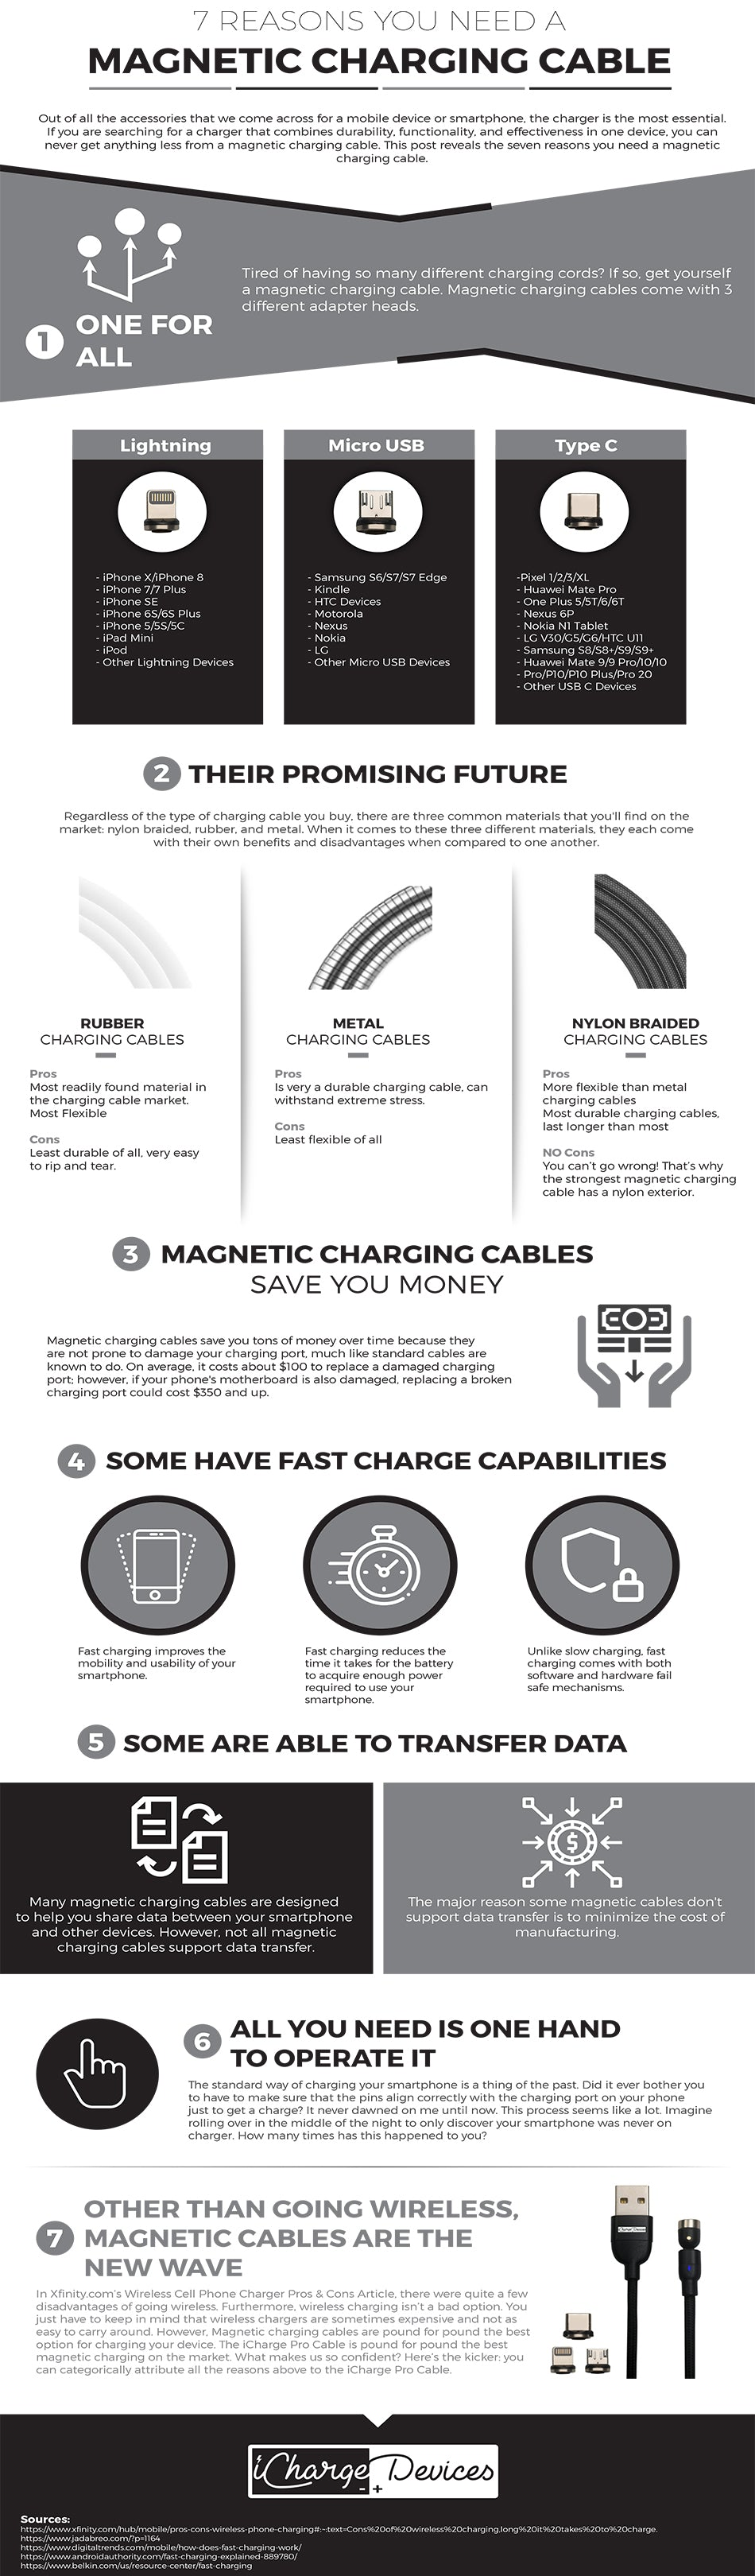 Magnetic Charging Cables: The Best Kept Secret 3